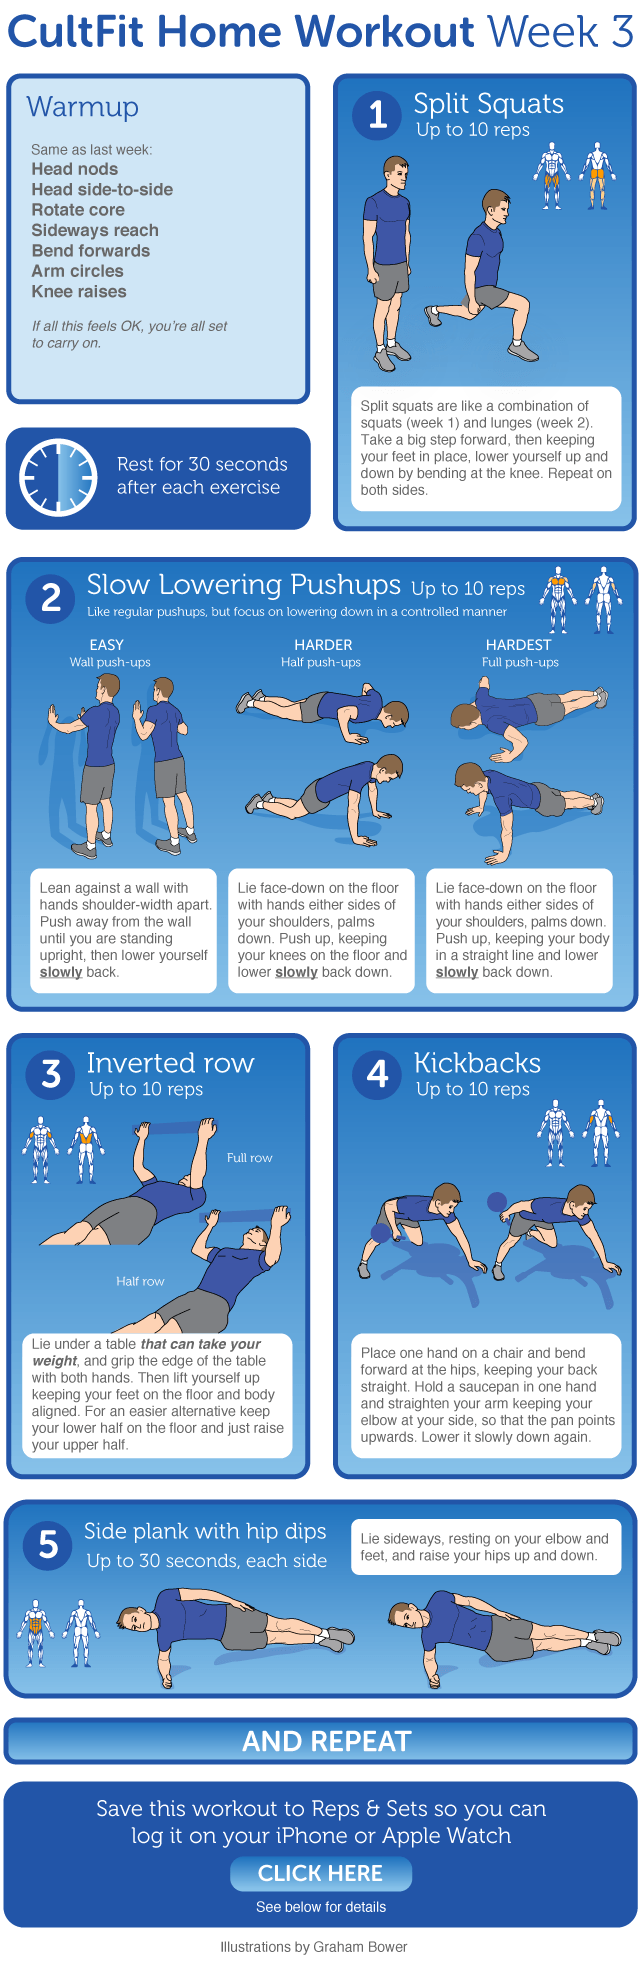 Add new exercises to your fitness routine with cultfit home workout want a hard copy of the exercise diagrams download the cultfit home workout week 3 program in printable pdf format pooptronica Gallery